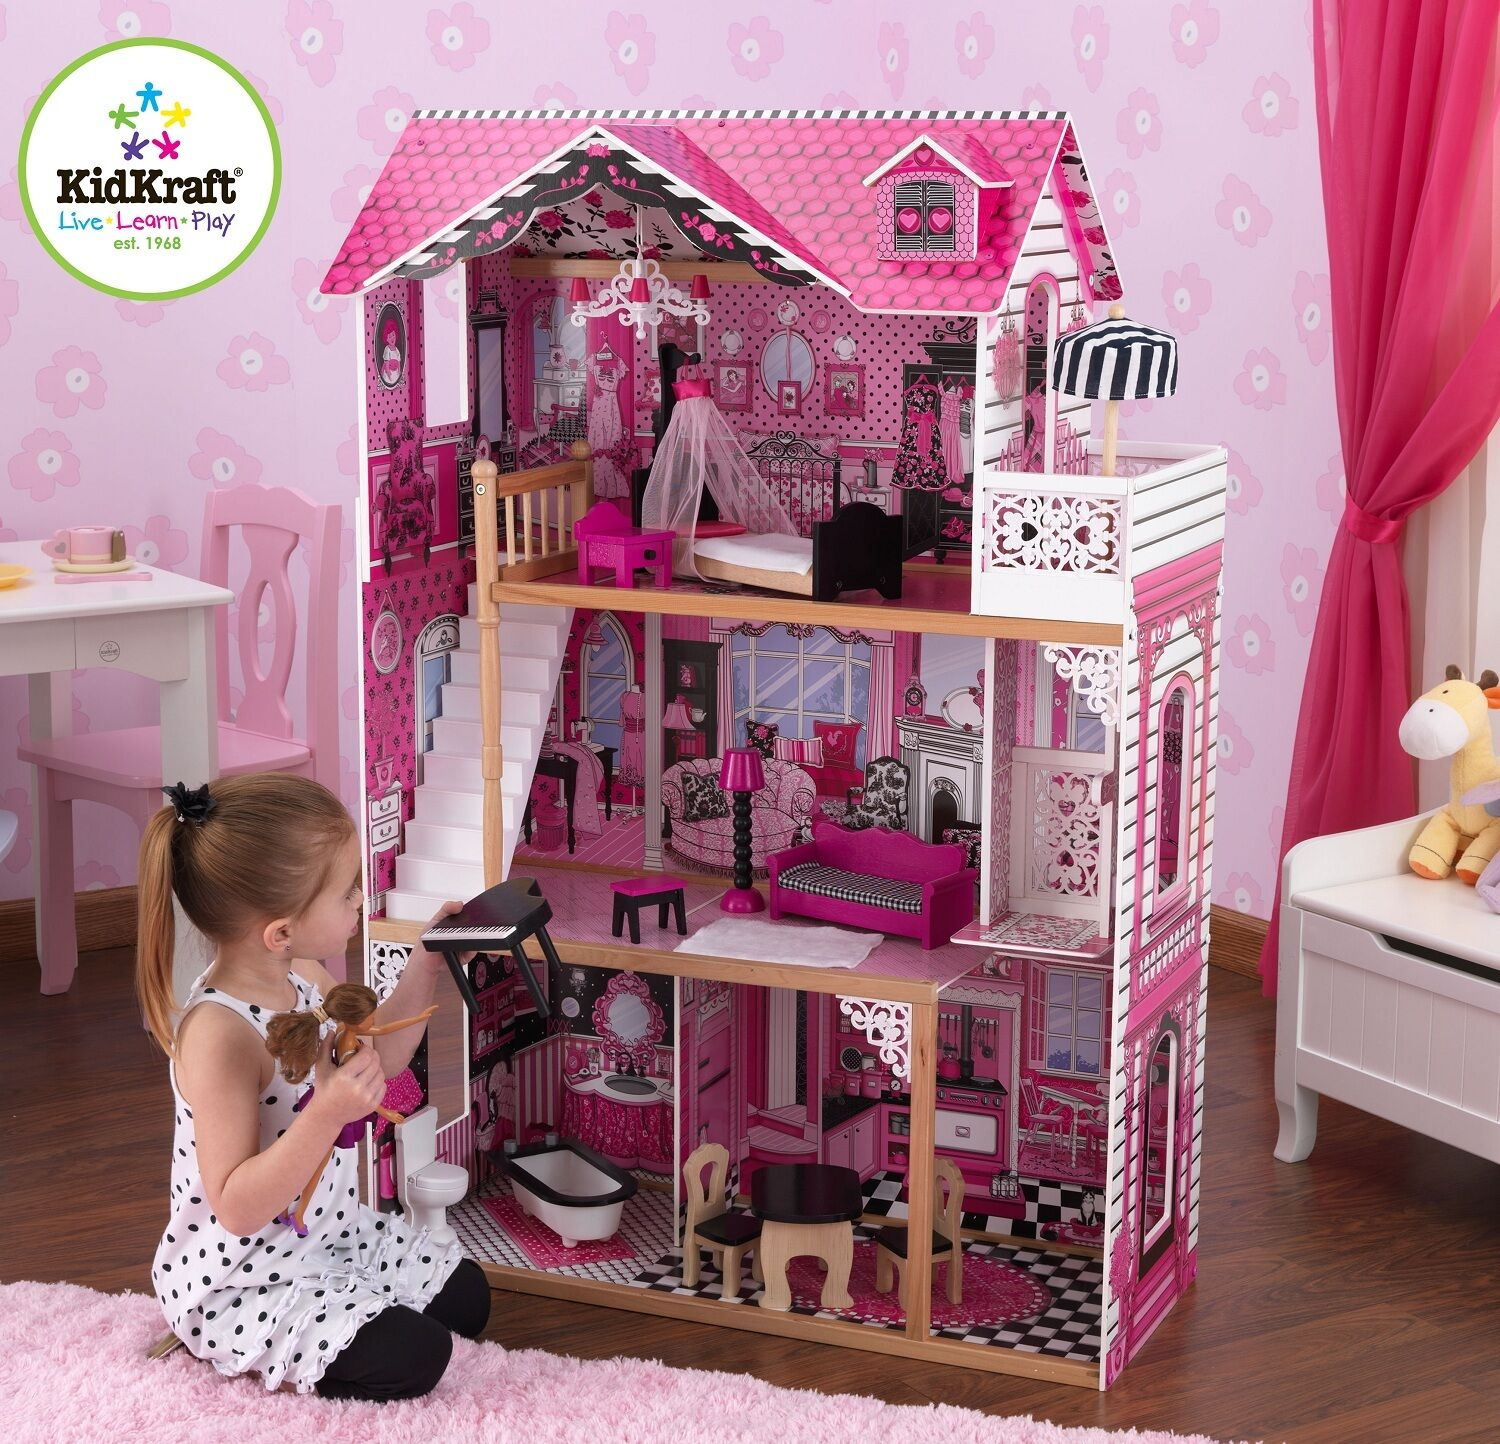 Kidkraft Amelia Dollhouse, Wooden House with Lift fits Barbie Größed Dolls